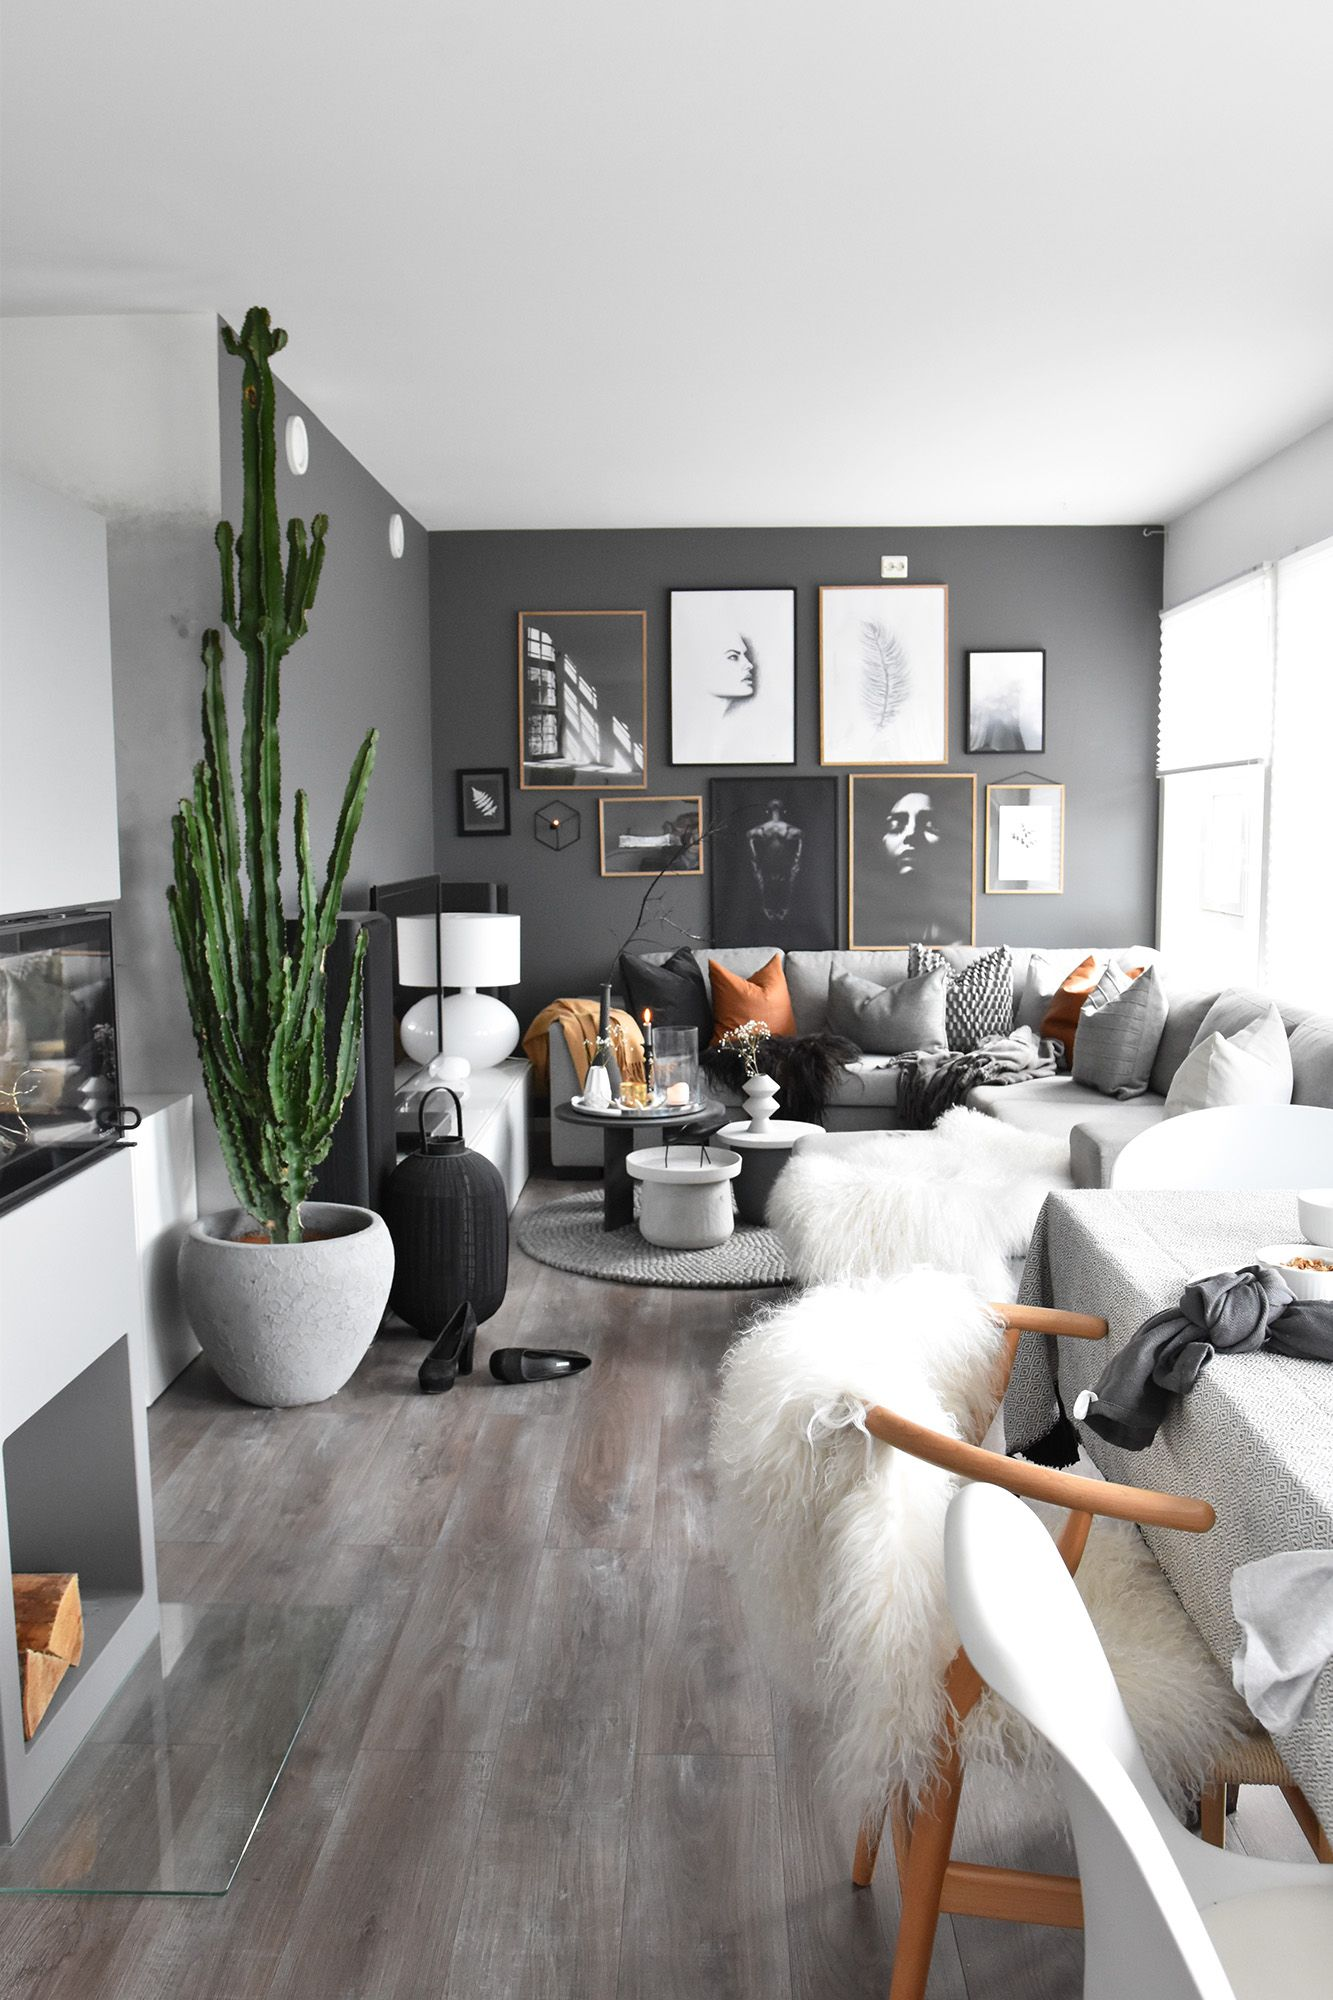 Dark Grey Flooring Living Room Blue Paint Colors For Walls 10 Fall Trends The Season S Latest Ideas Rooms Black Wall Idea With Indoor Plants And Amazing Art